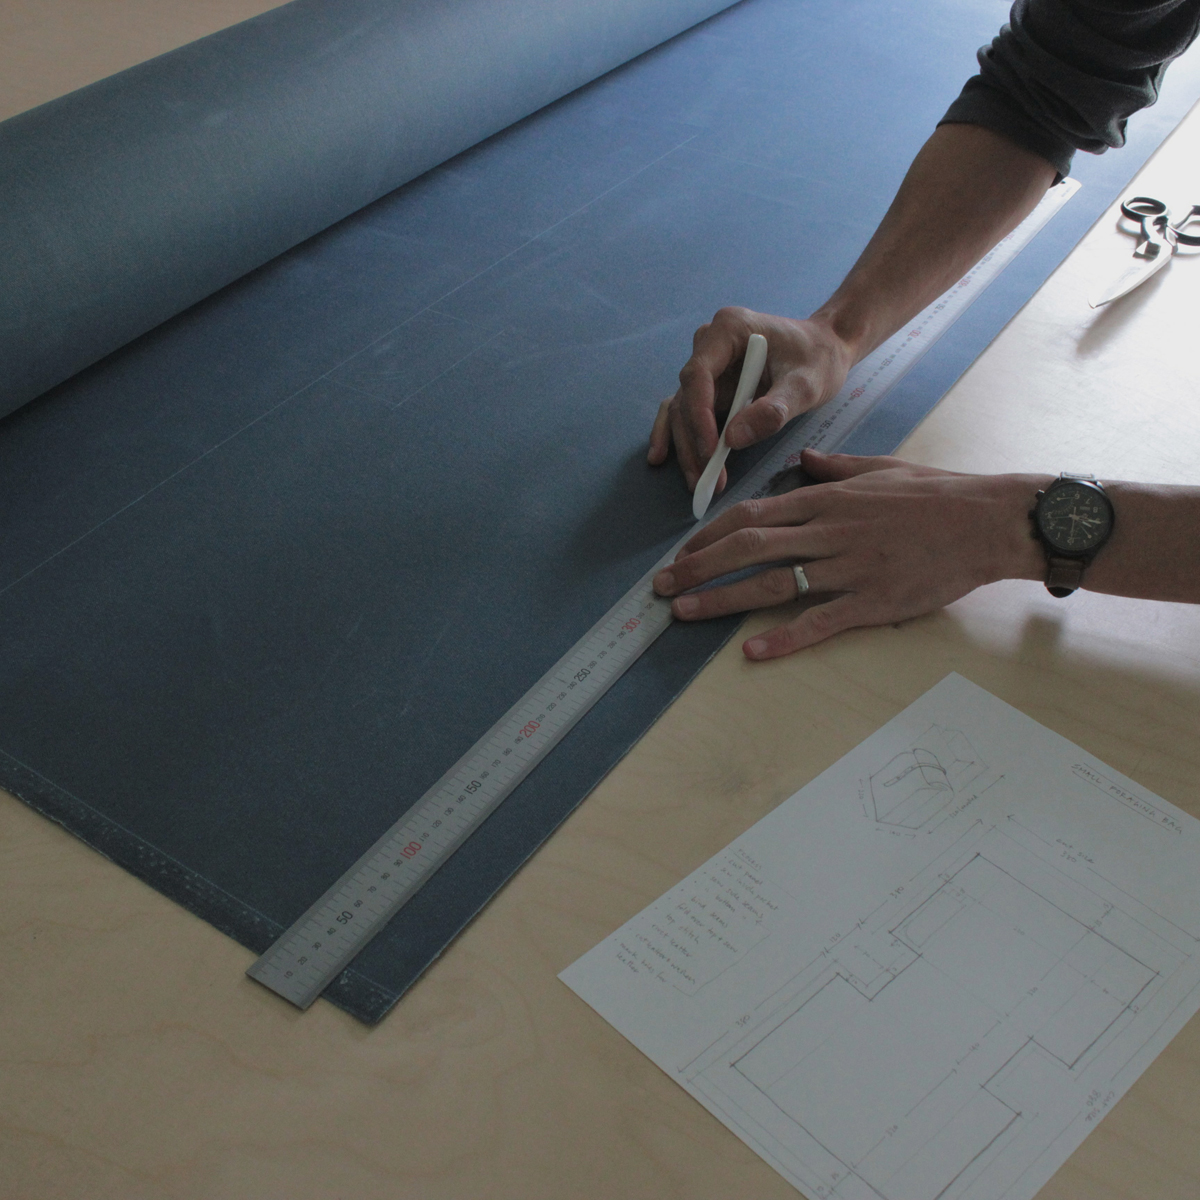 pattern marked out - its going to be our deep teal colour. Onto cutting...